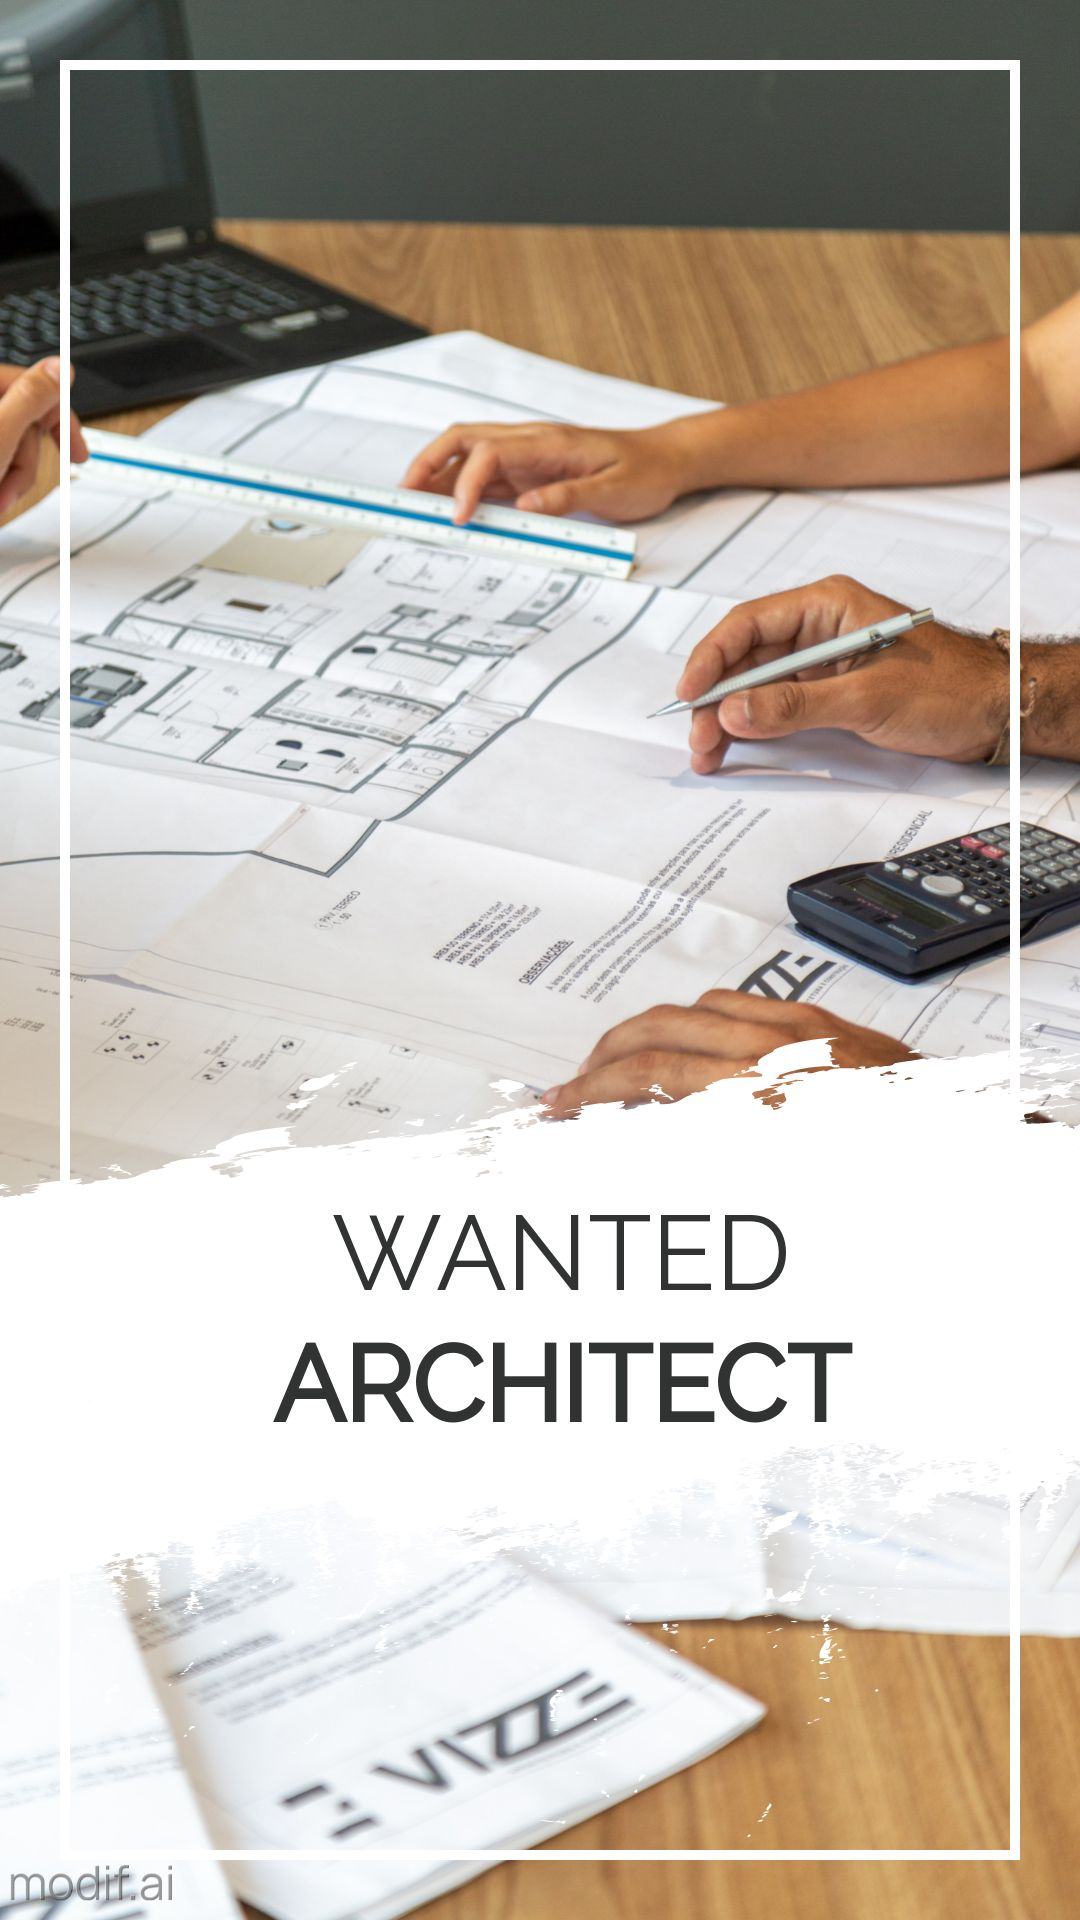 Wanted Architect Instagram Story